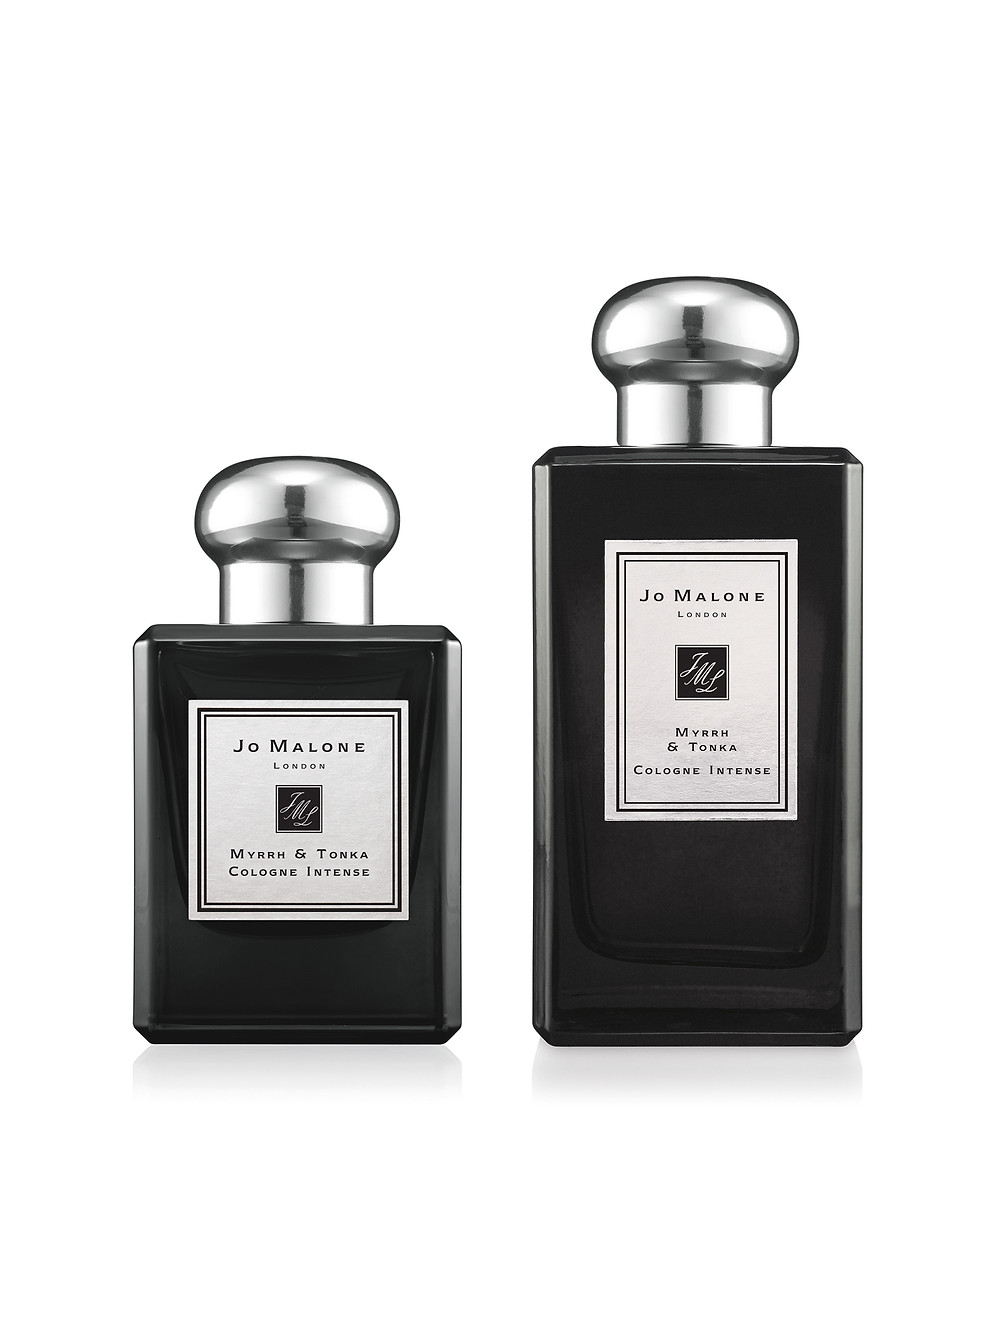 Jo Malone will launch Myrrh & Tonka, a new unisex fragrance in the Cologne Intense Collection, in January. Myrrh & Tonka was developed by perfumer Mathilde Bijaoui, and features notes of myrrh, almond, lavender, vanilla and tonka bean. Jo Malone Myrrh & Tonka will be available in 100 ml Cologne Intense. It's a perfect winter scent.